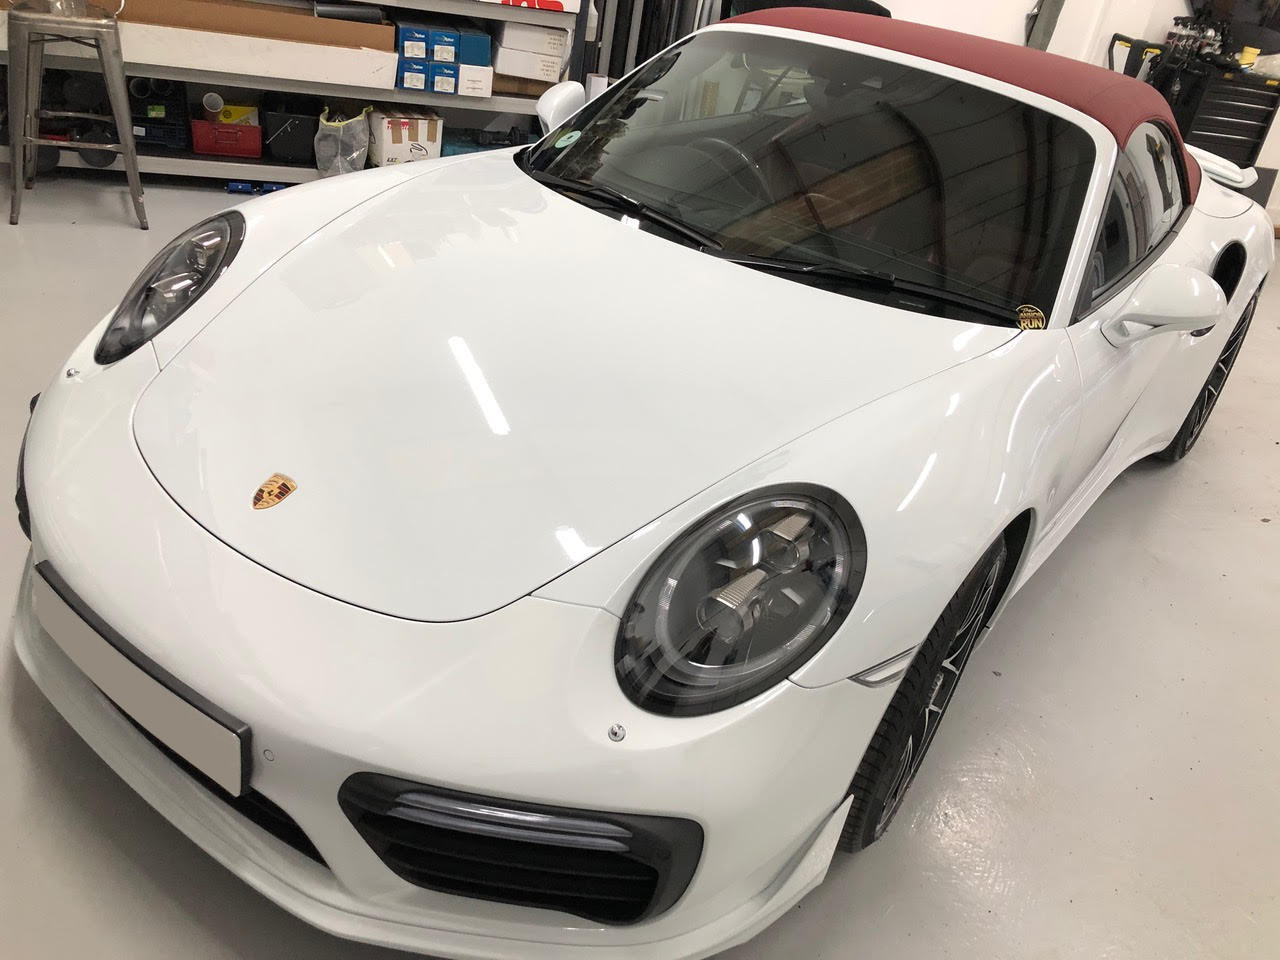 Paint Protection Film fitted to headlights and paintwork